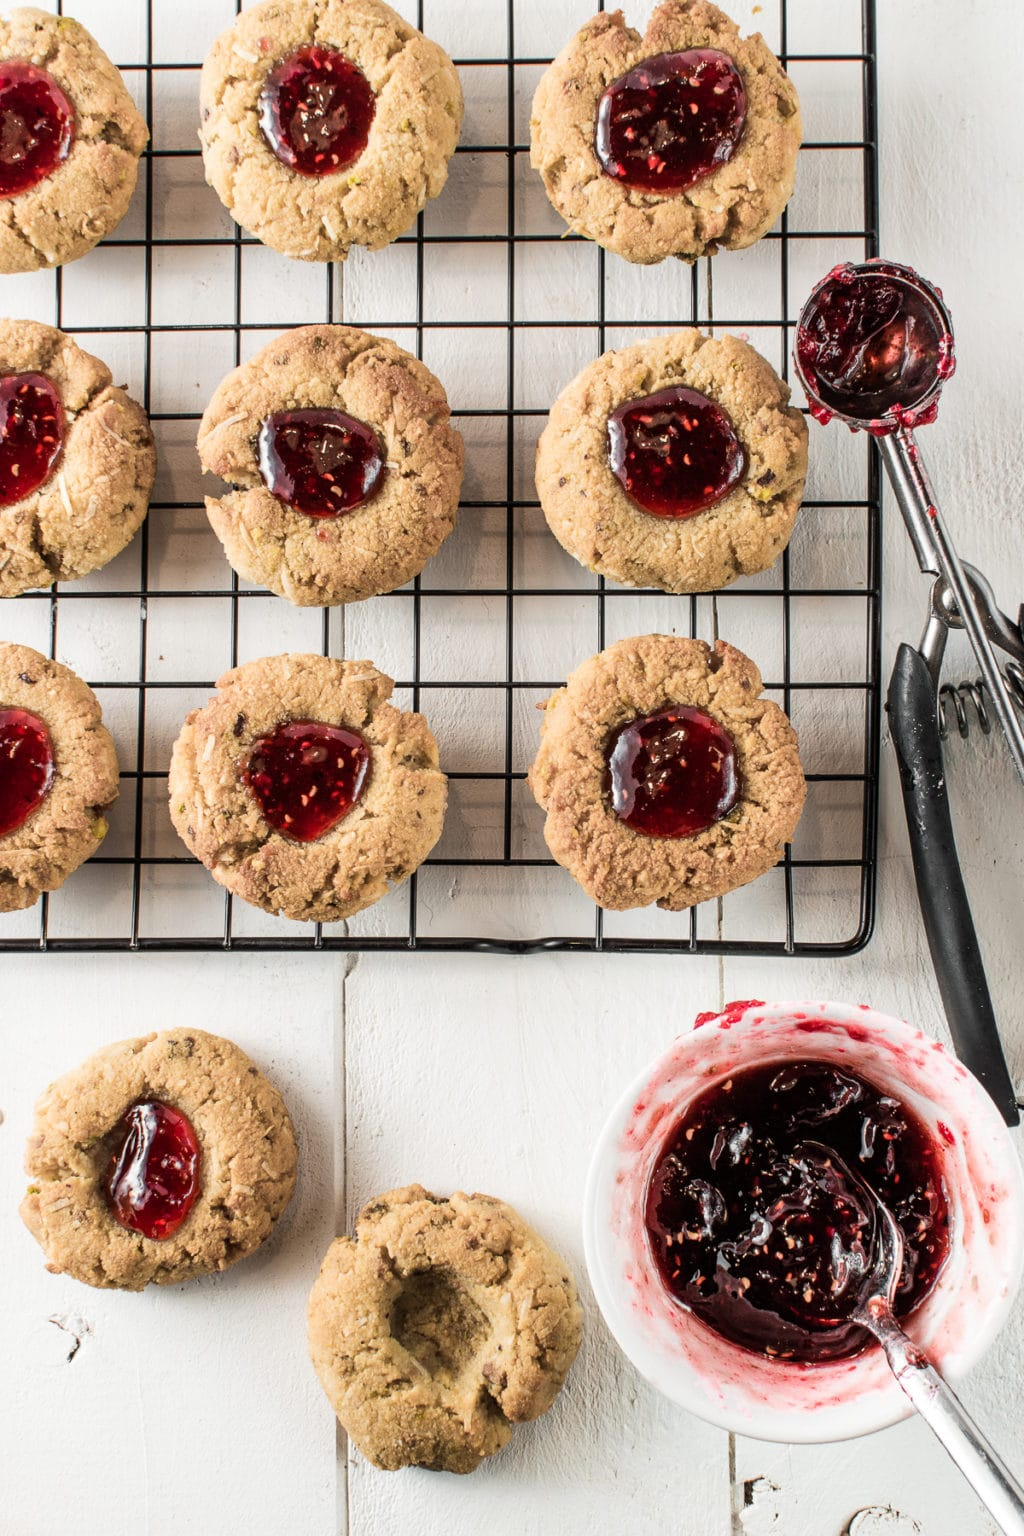 Set on a white backdrop, are nine thumbprint cookies filled with gooey, raspberry jam spaced evenly on a cooling rack. A stainless cookie scoop, half full of sticky jam, rests on the right side of the metal rack.  Below the rack, are two cookies--one filled with jam, and one with an empty divot. Beside the empty cookie is a jam-filled teaspoon inside a small, white bowl filled with sticky, raspberry jam.